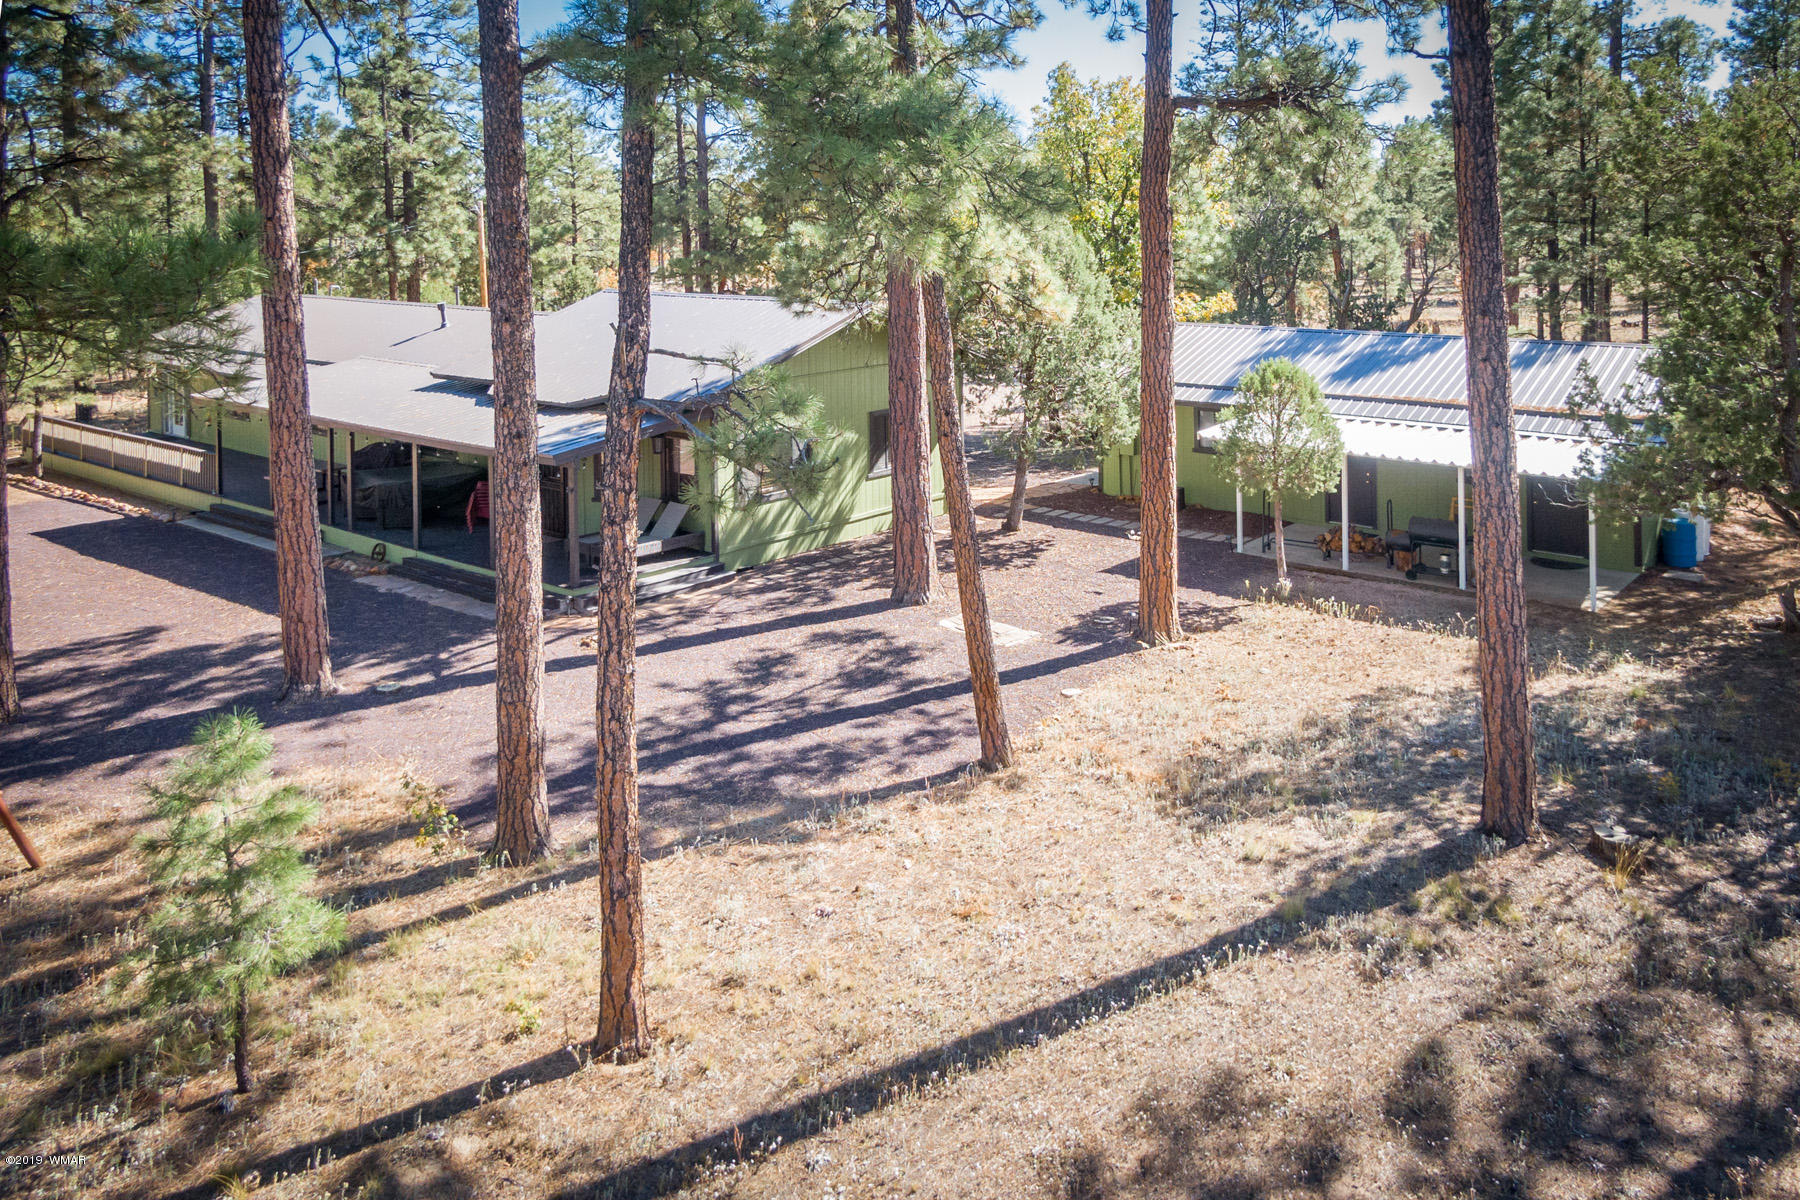 Priced below appraisal!  Quiet, secluded & backing national forest! This ranch style single level home has 3 bedrooms, 2 baths and tons of towering old growth Ponderosa Pine trees. Suitable for the entire family with large living room, spacious kitchen with tons of cabinets and level lot with room to roam. New metal roof, new paint inside & out, new flooring, new wood interior doors & trim, plus updated lighting & fixtures & new trex decking spanning the entire length of the home for you to enjoy the sound of the wind whistling through the pines, family BBQ's and OK for horses too! There is a HUGE detached 2 car garage with storage room plus a separate workshop and room for garden tools (both having separate entrances). Shared well with 2 other property owners but has it's own insulated